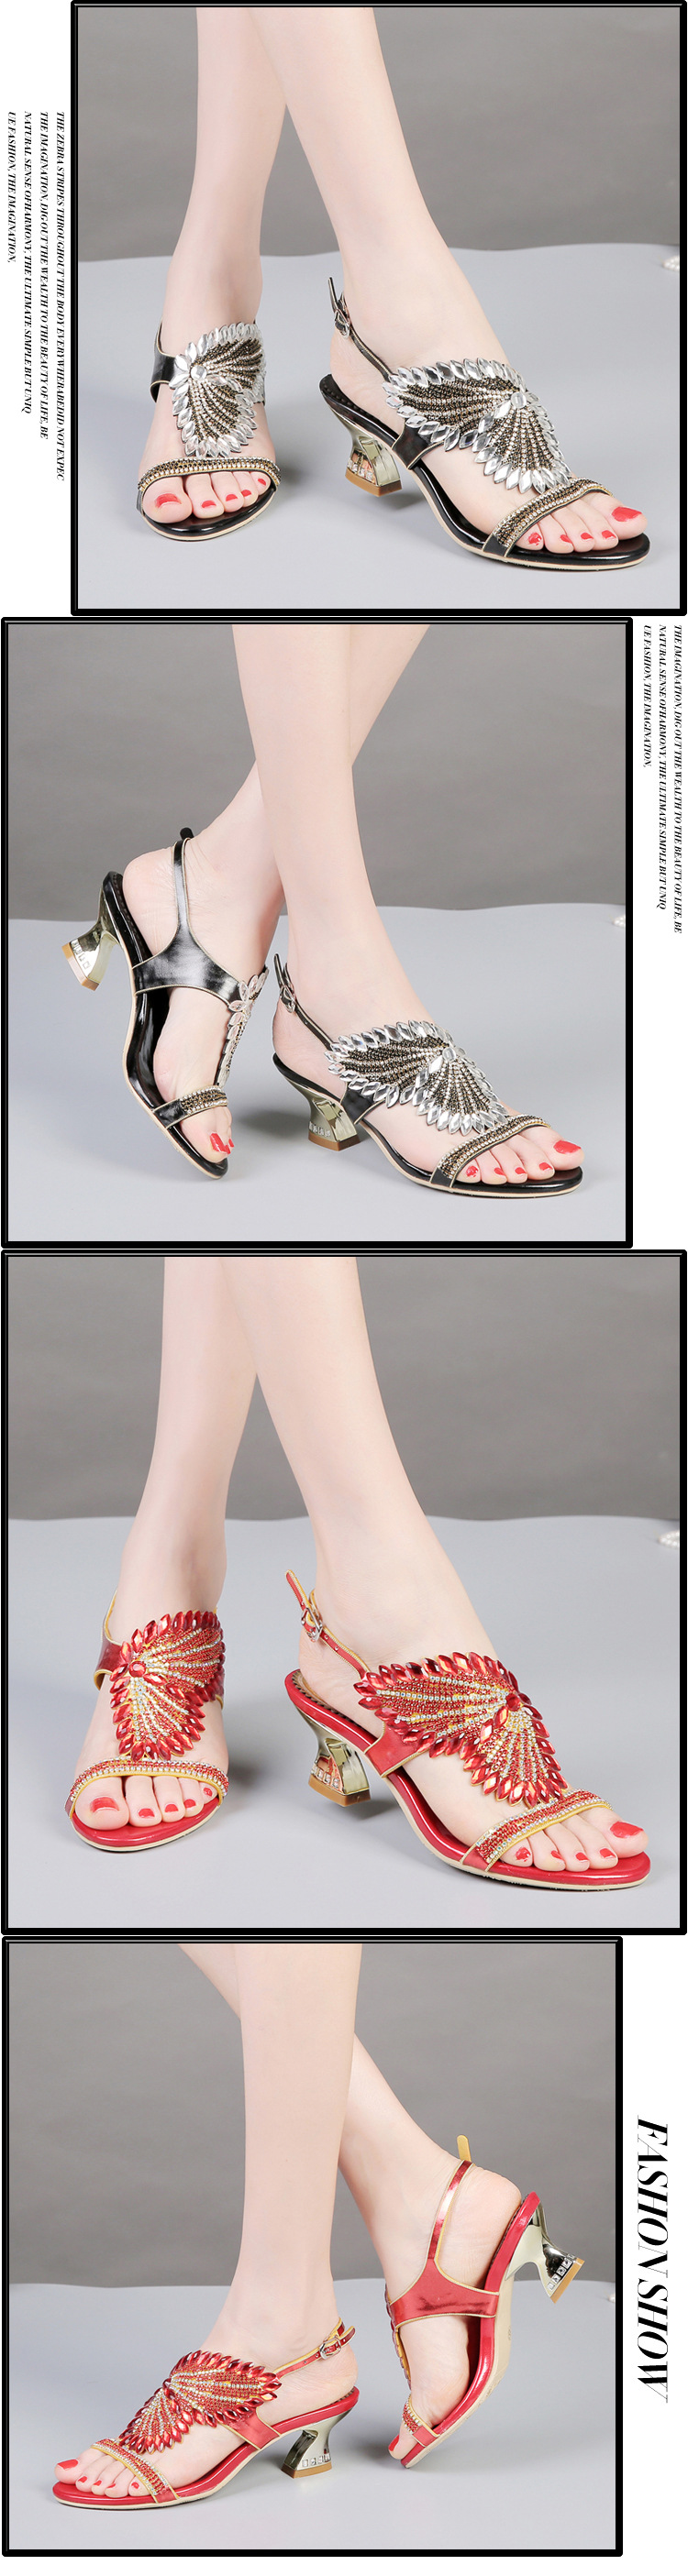 G-sparrow New Summer Womens Shoes Diamond Sandals Female Buckle Fashion Purple Gold Black Red Comfortable Thick High Heels3